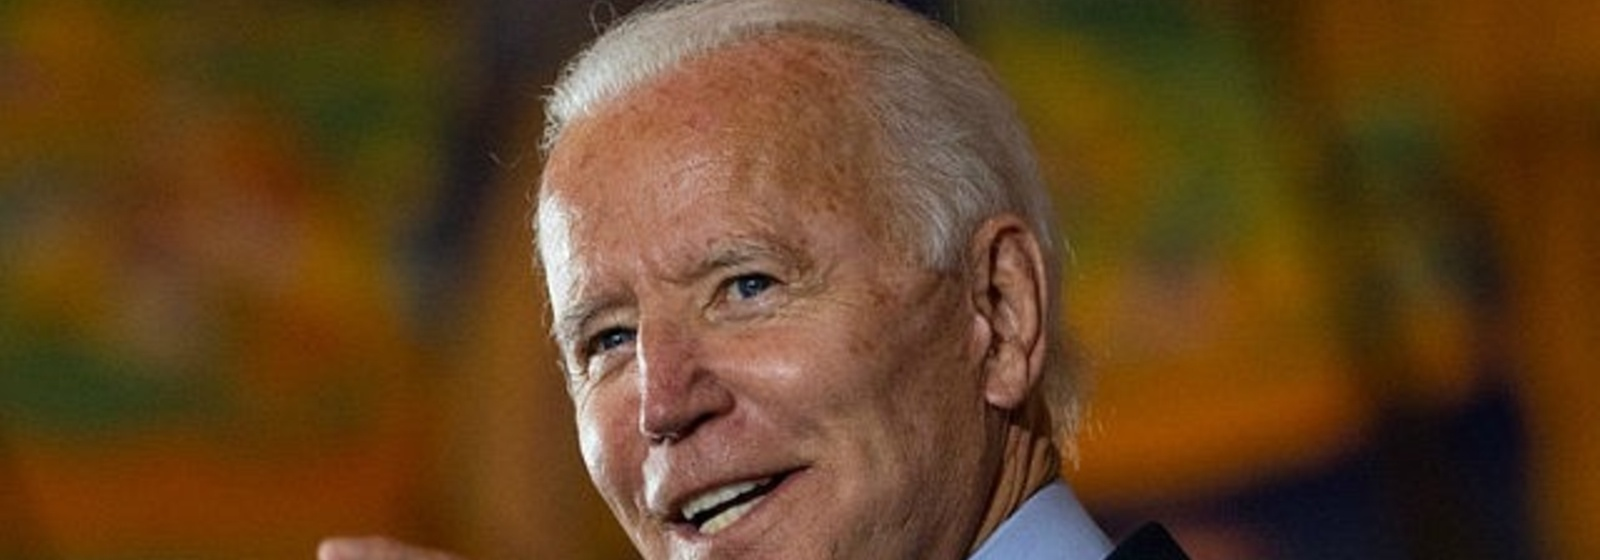 Biden Admits to Border Crisis, White House Overrides His Statement